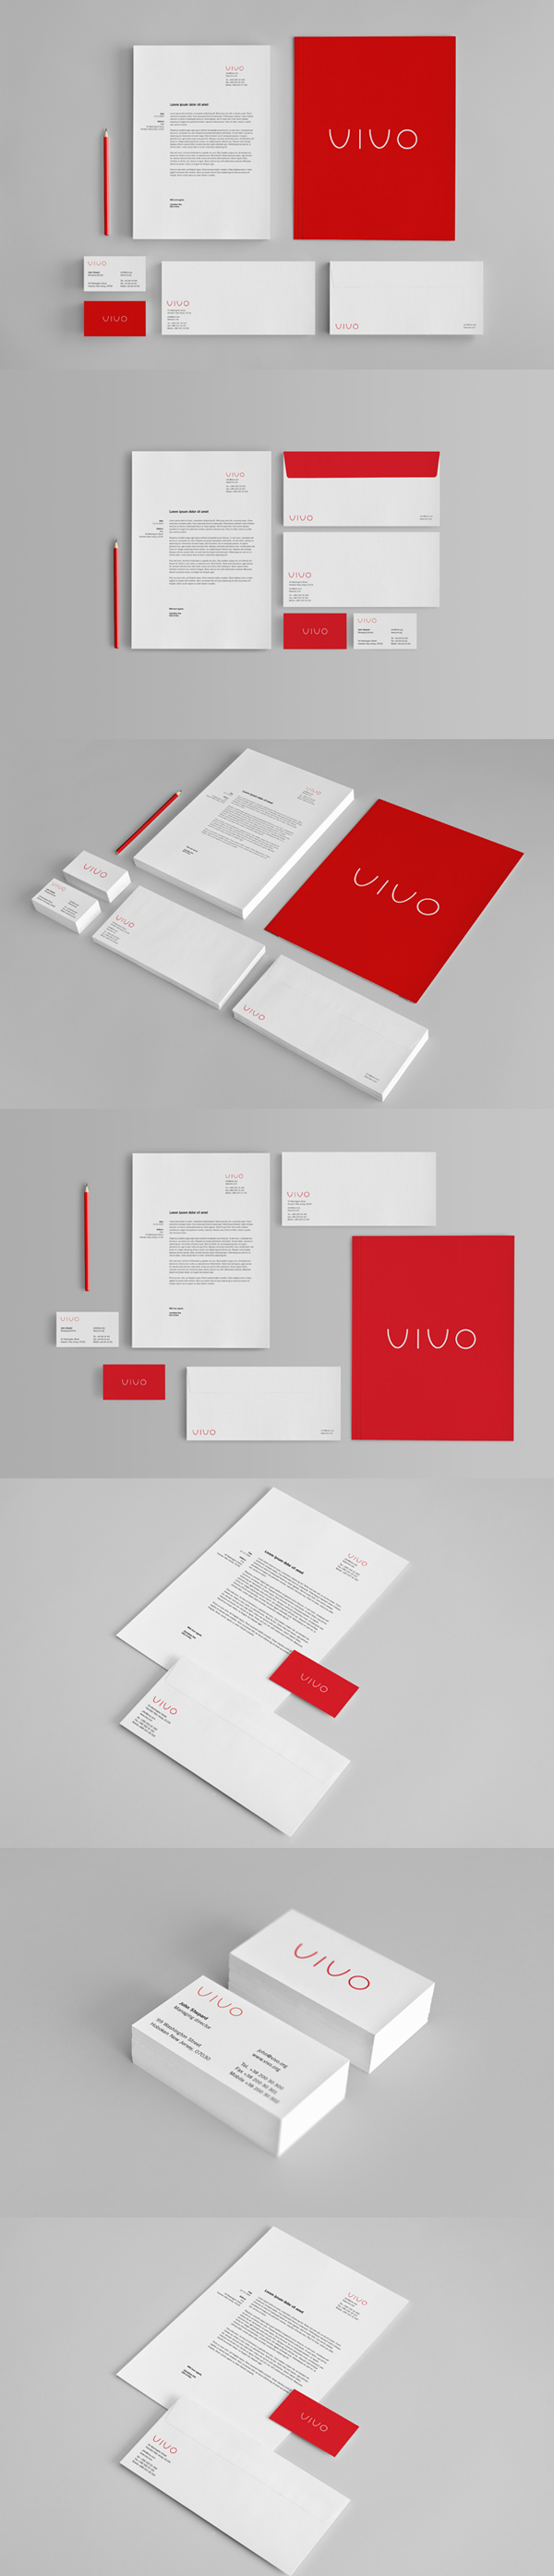 05 Branding : Stationery Mock-Up